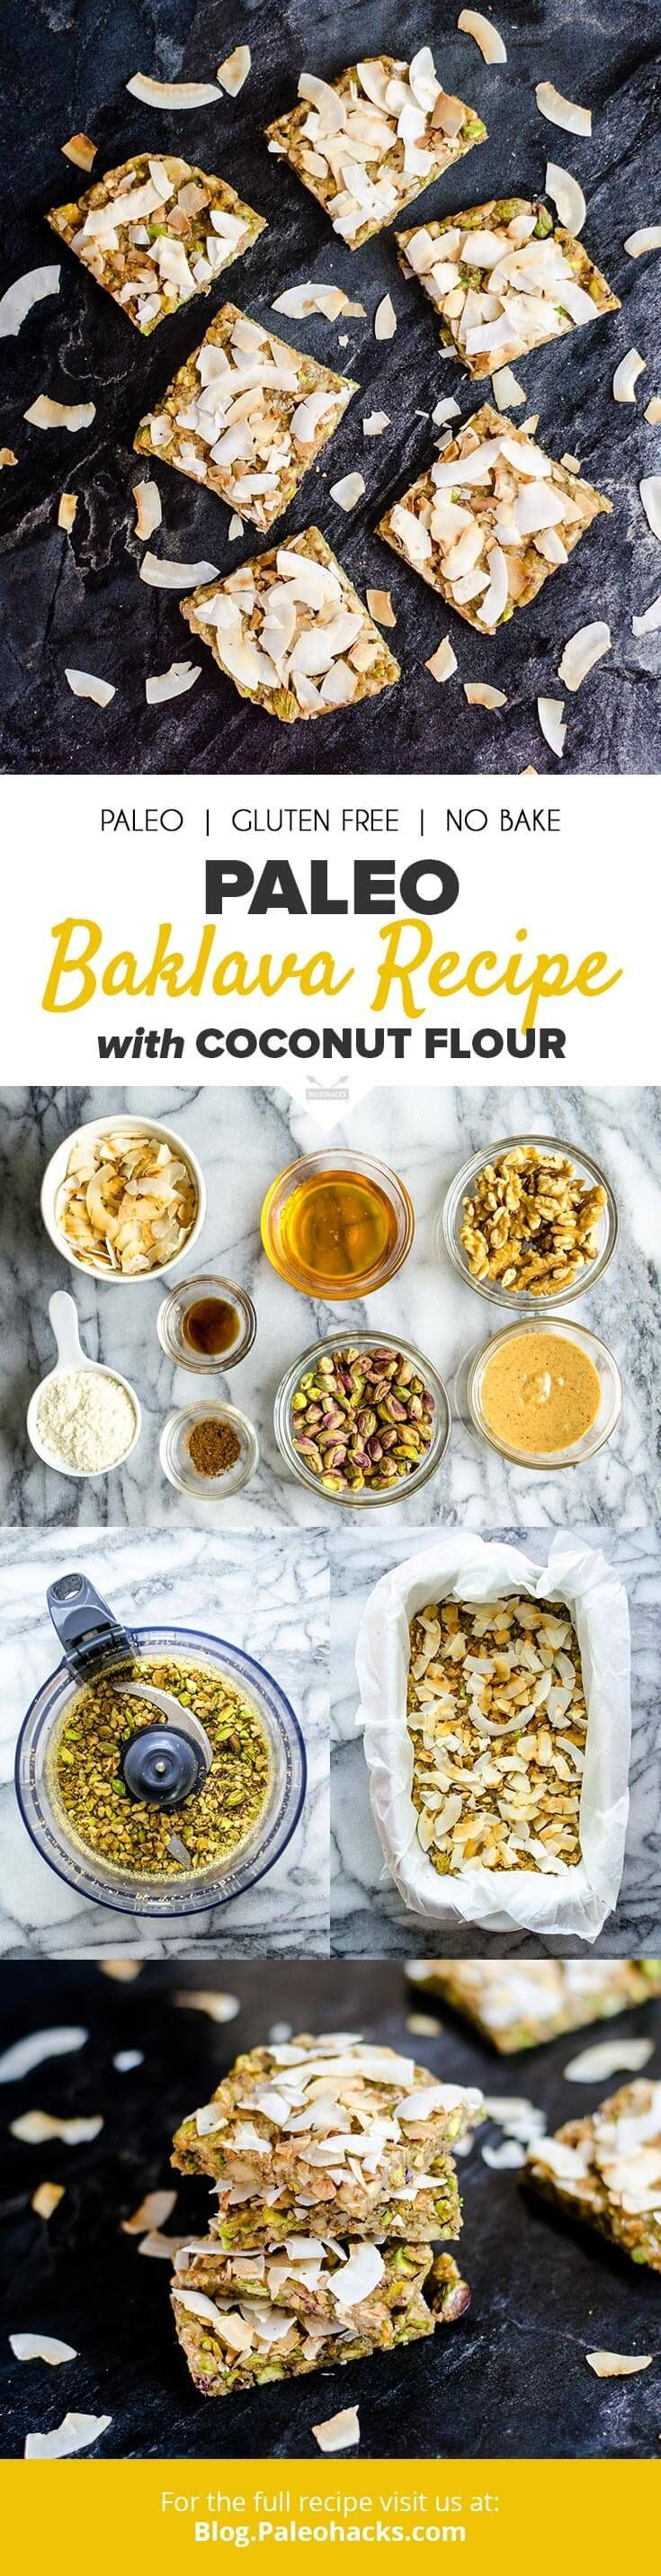 For a Paleo twist on baklava, this zero-baking recipe delivers pistachios, walnuts, honey and hazelnut butter all in one decadent bite. Get the recipe here: http://paleo.co/baklavarcp